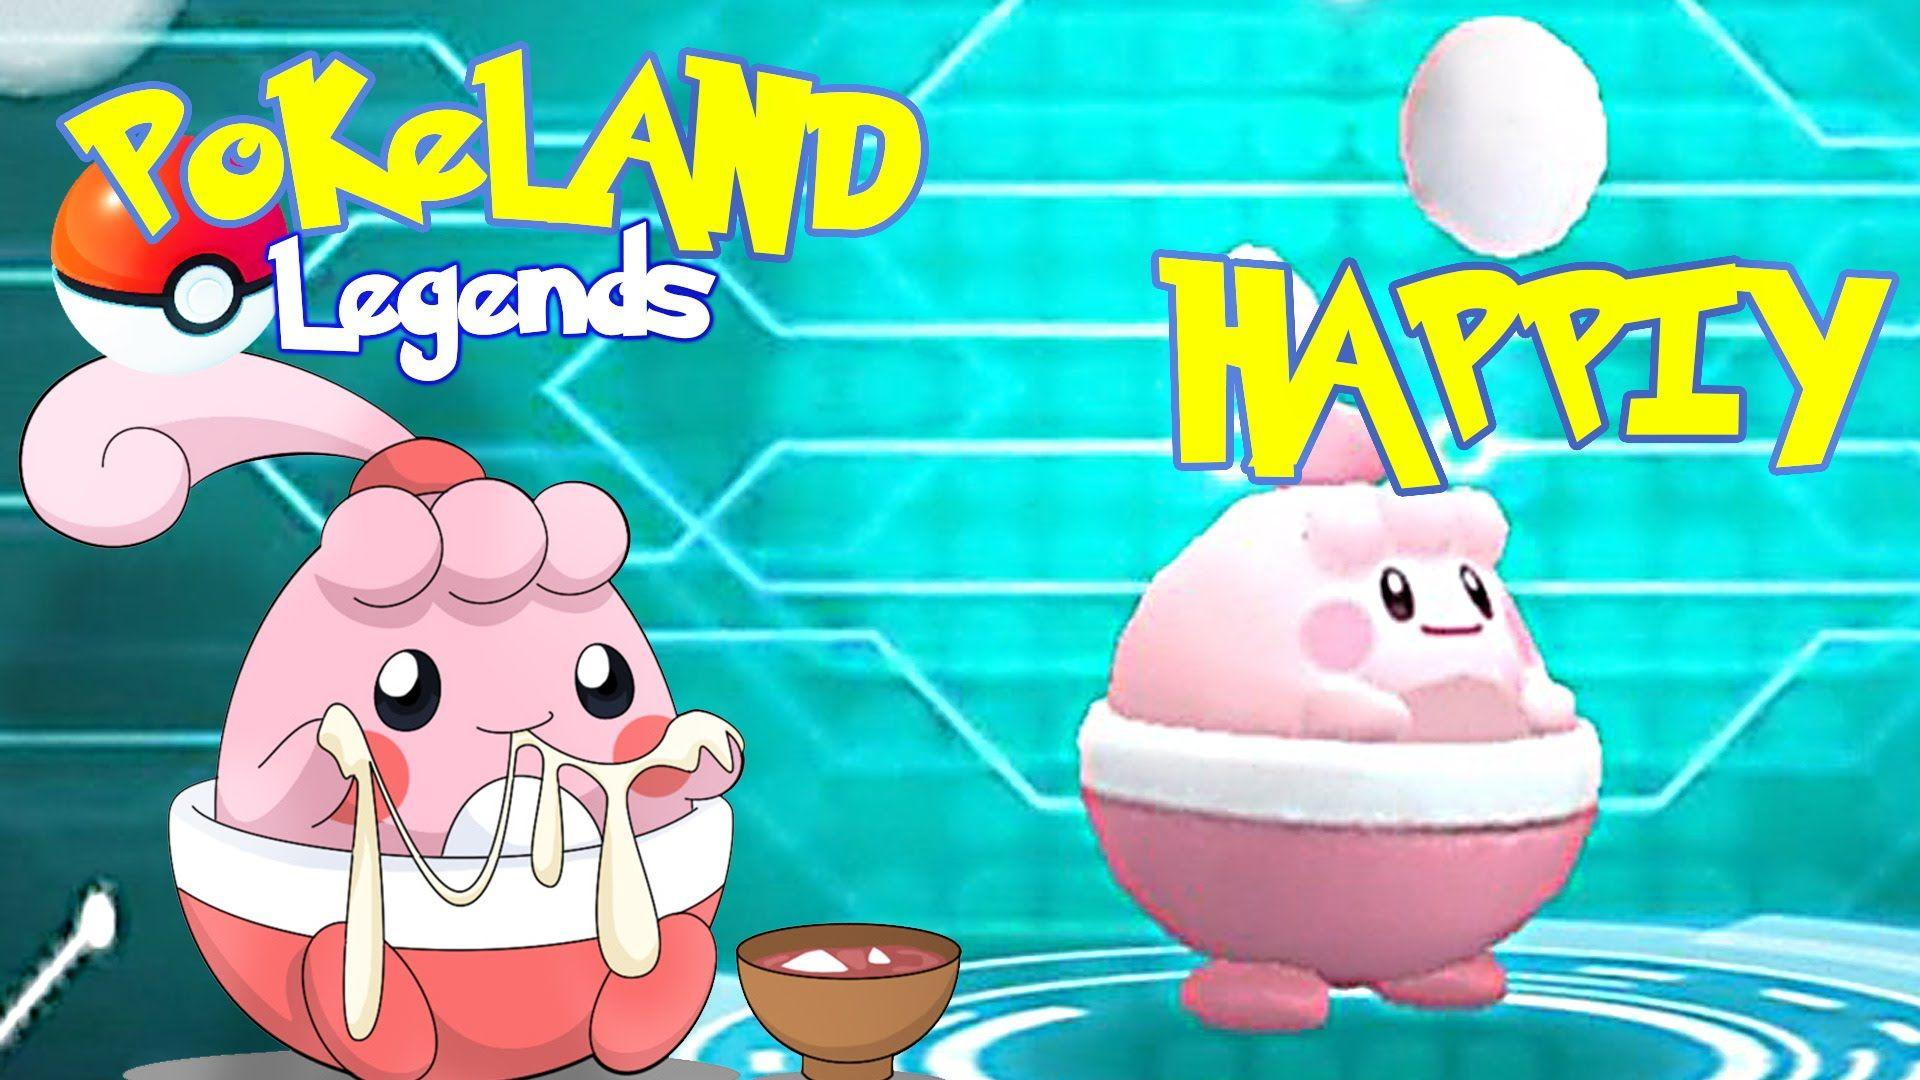 POKELAND LEGENDS - Cutie Happiny!! - YouTube